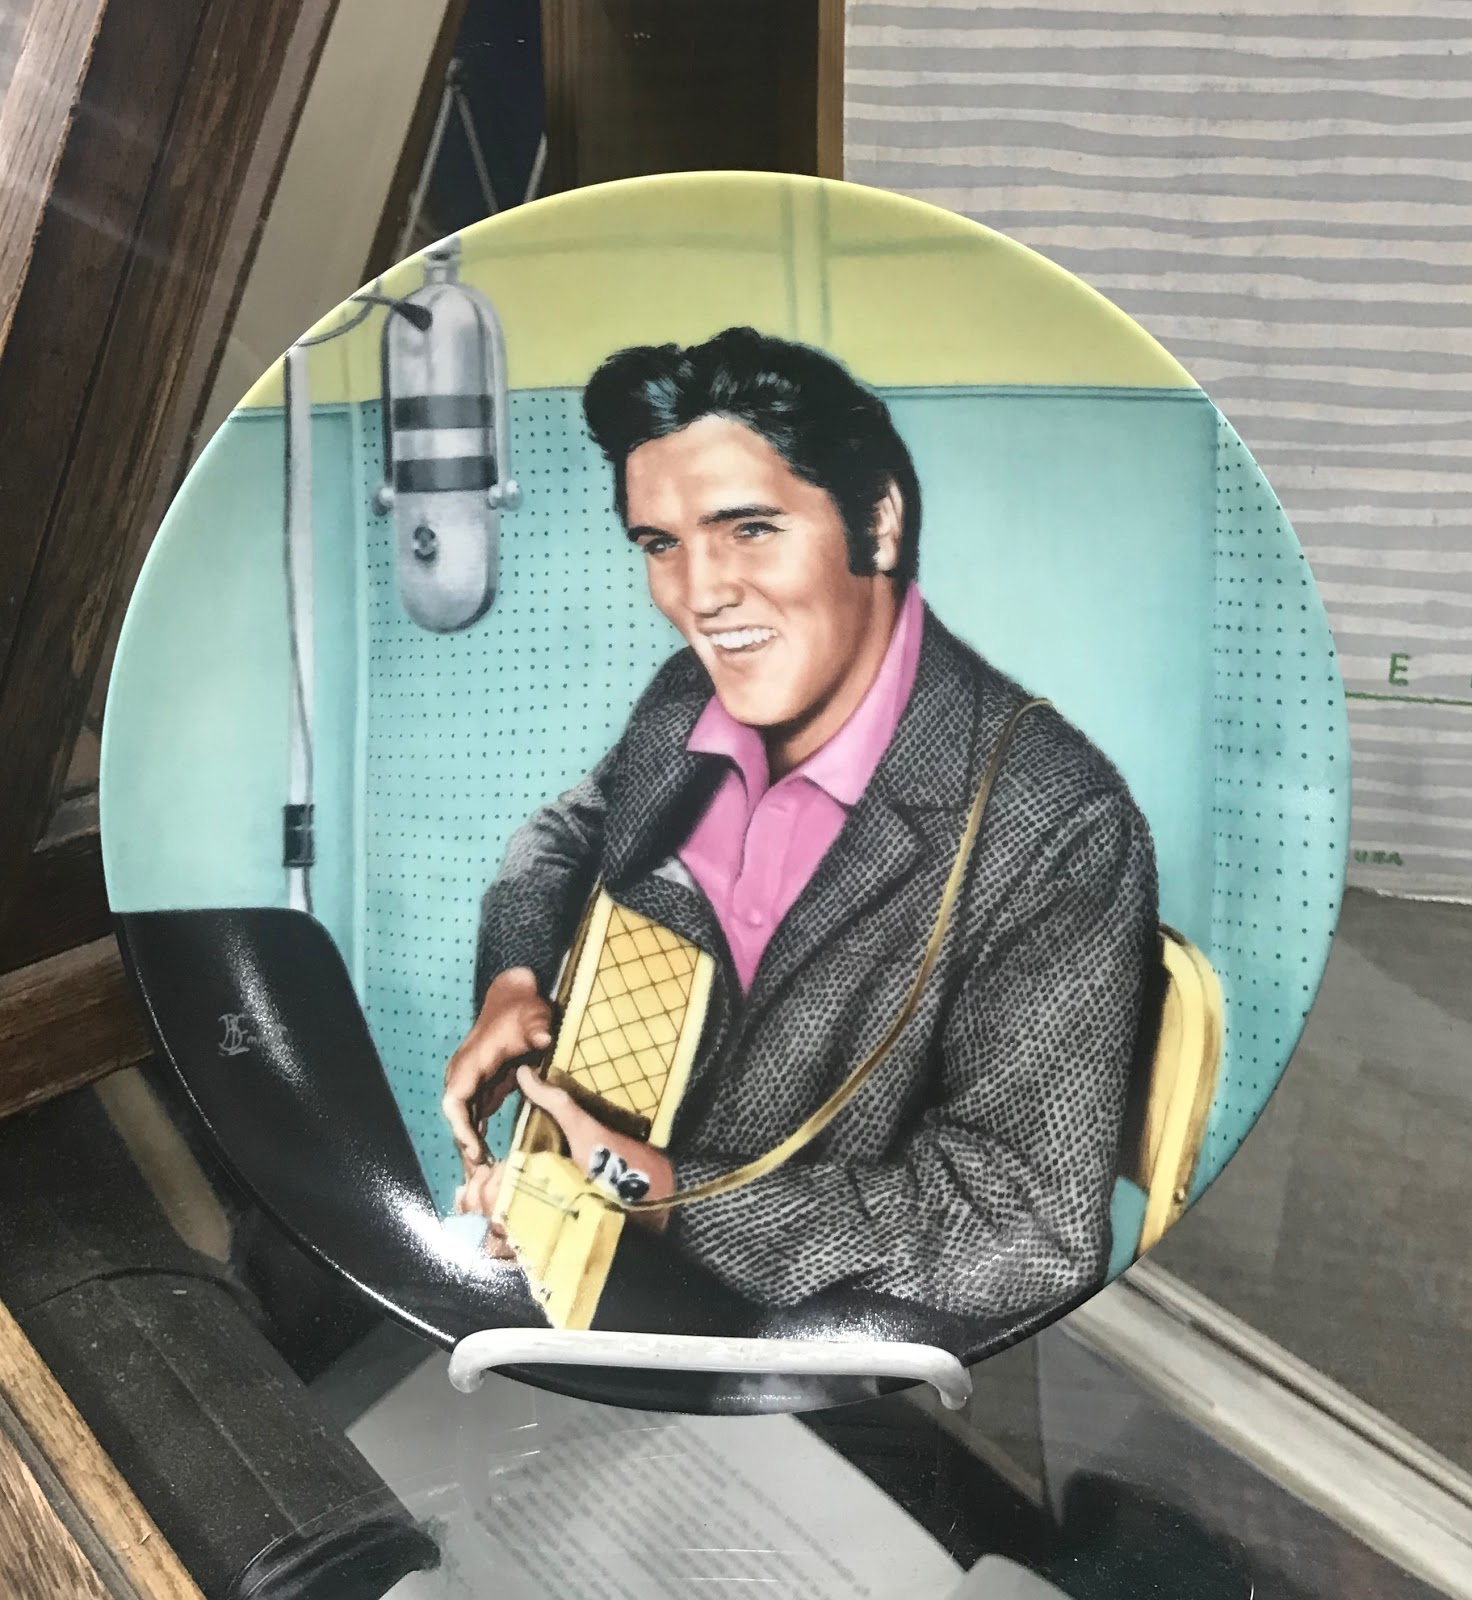 Image: Elvis Presley Pictures that were being sold at a Vintage market in Dallas, Texas